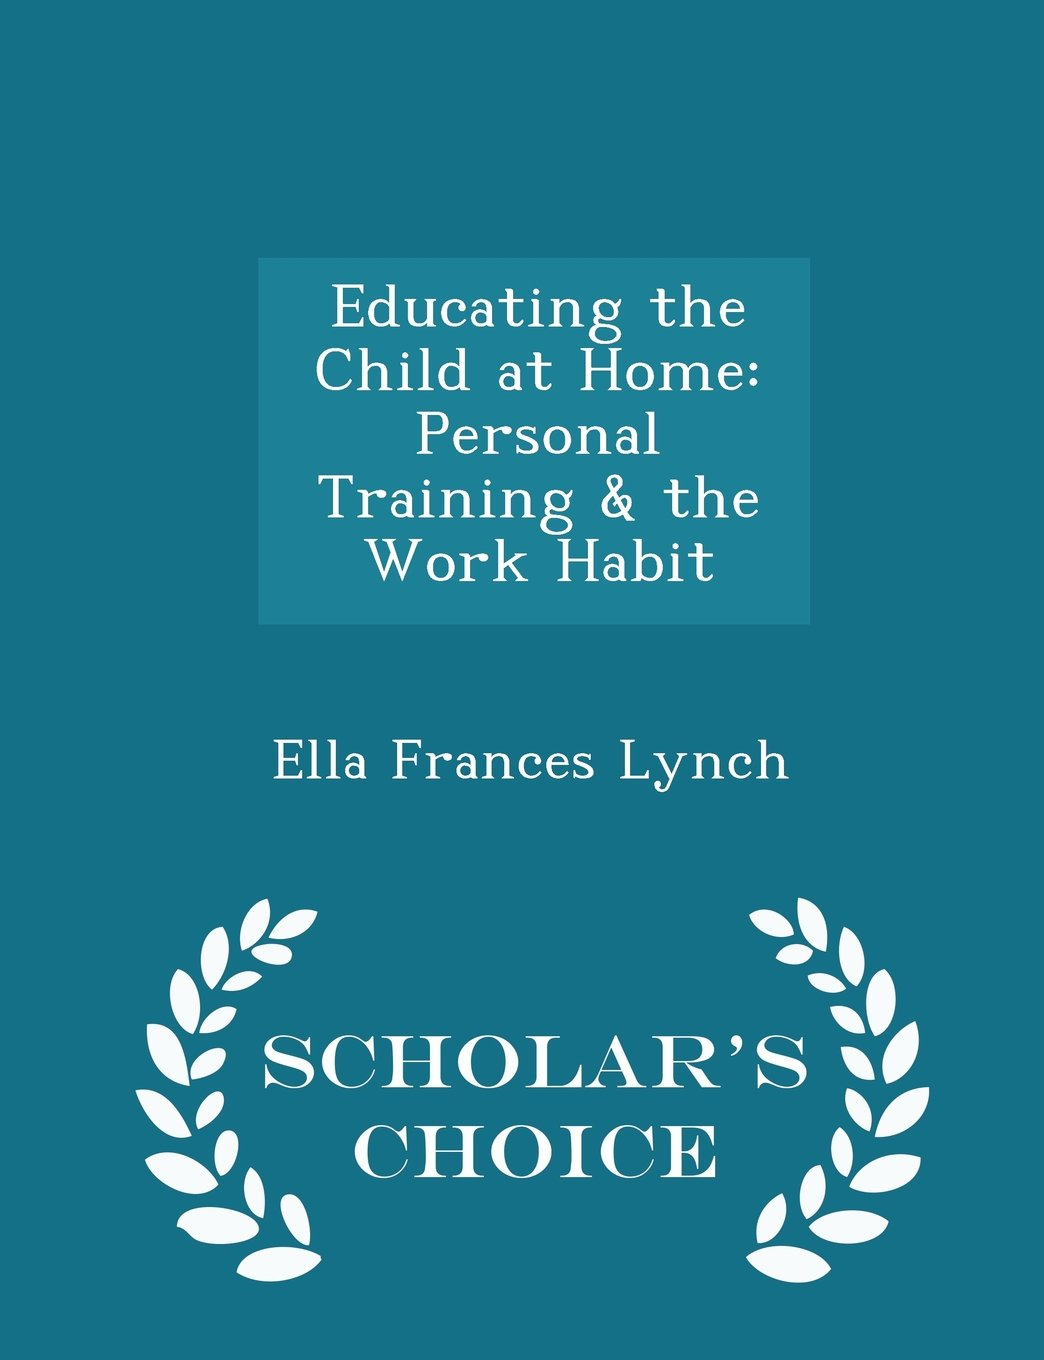 Download Educating the Child at Home: Personal Training & the Work Habit - Scholar's Choice Edition PDF